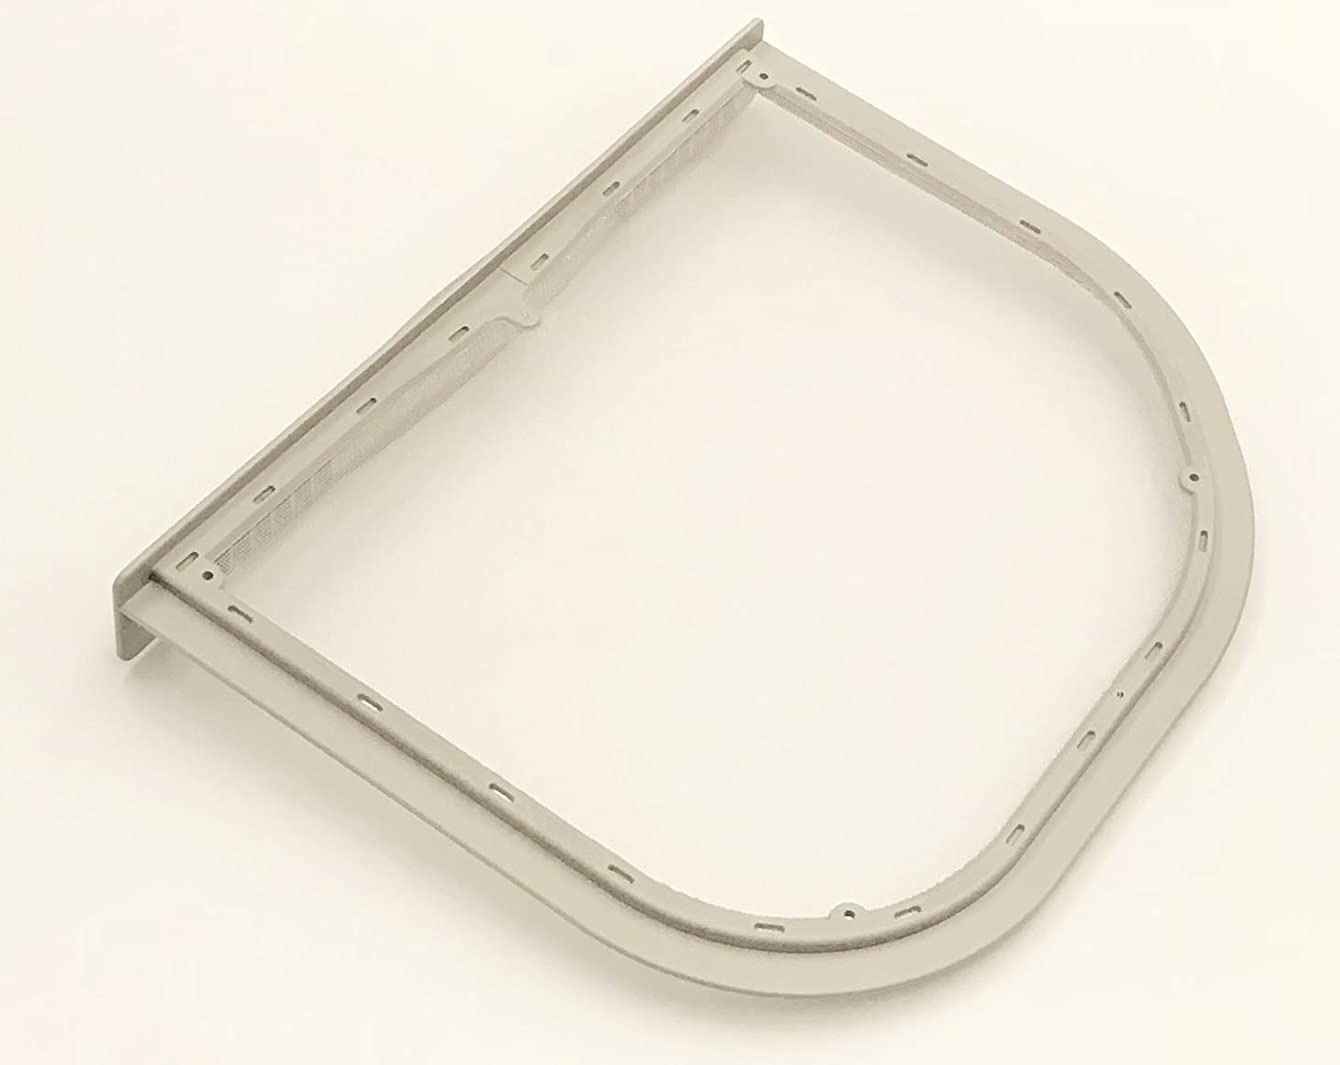 OEM LG Dryer Lint Filter Specifically For DLE5001W, DLEX5101V, DLEX5101W, DLEX5170V, DLEX5170W, DLEX5680V